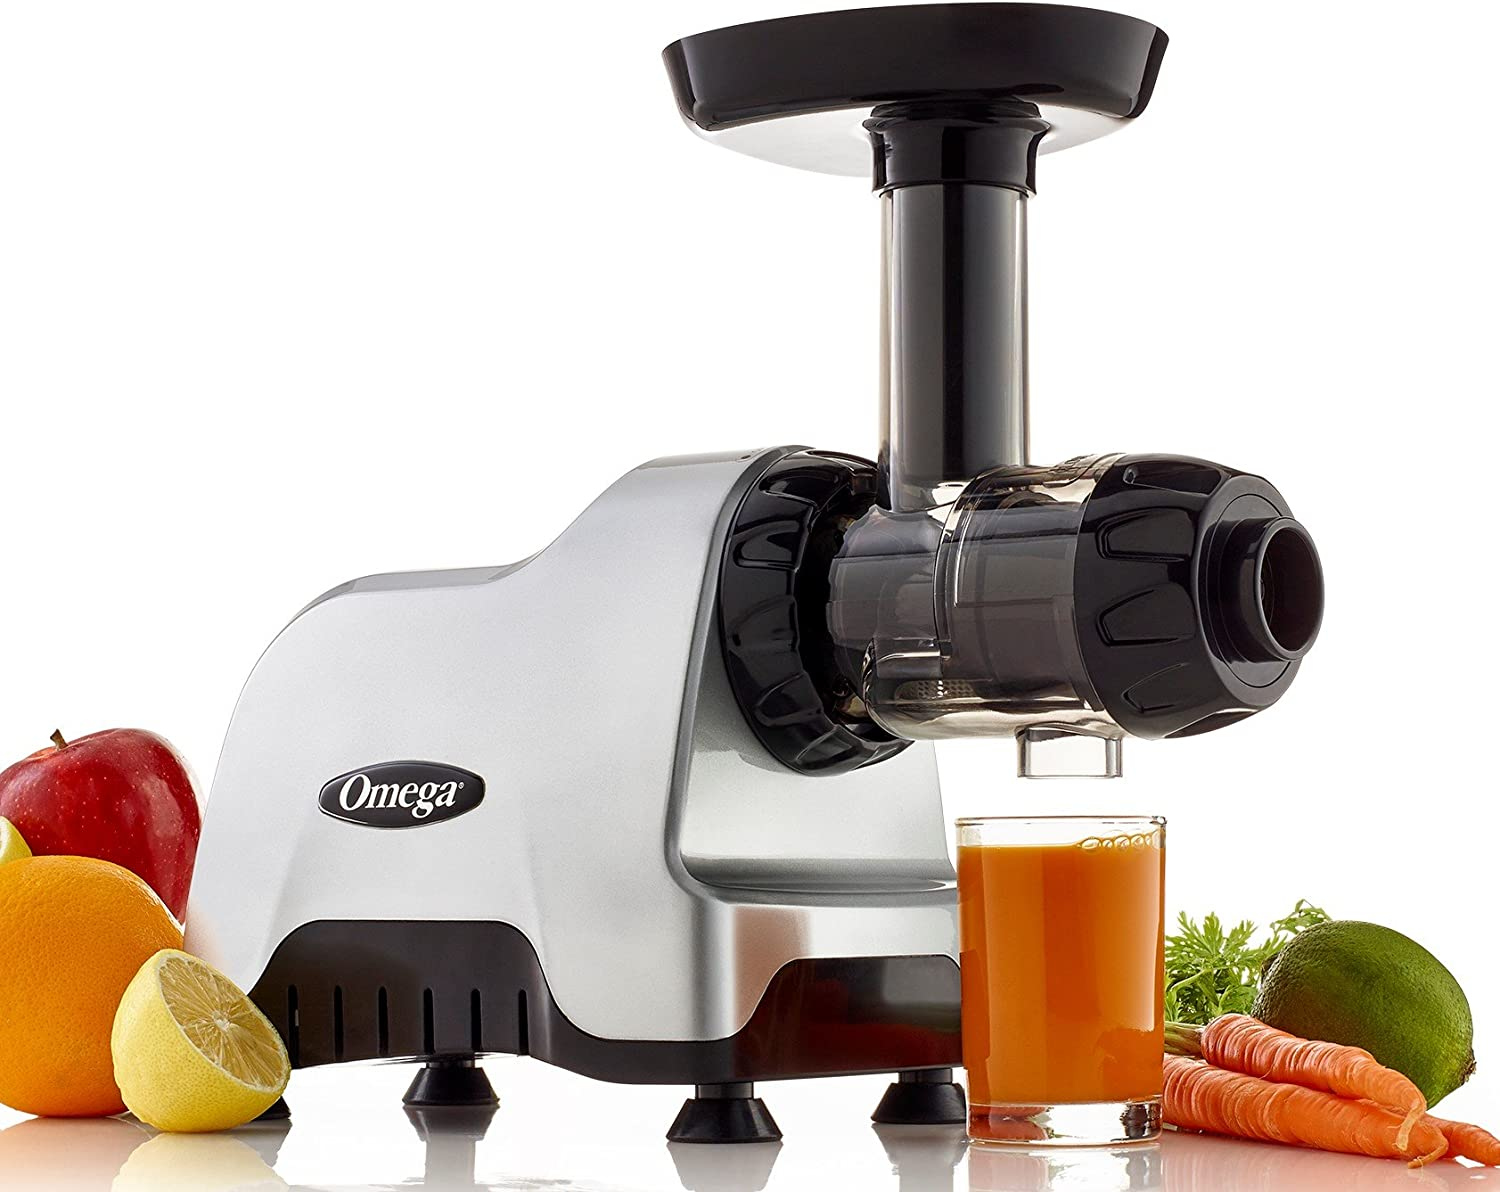 Omega CNC80S: Best Compact Juicer with Quiet Motor